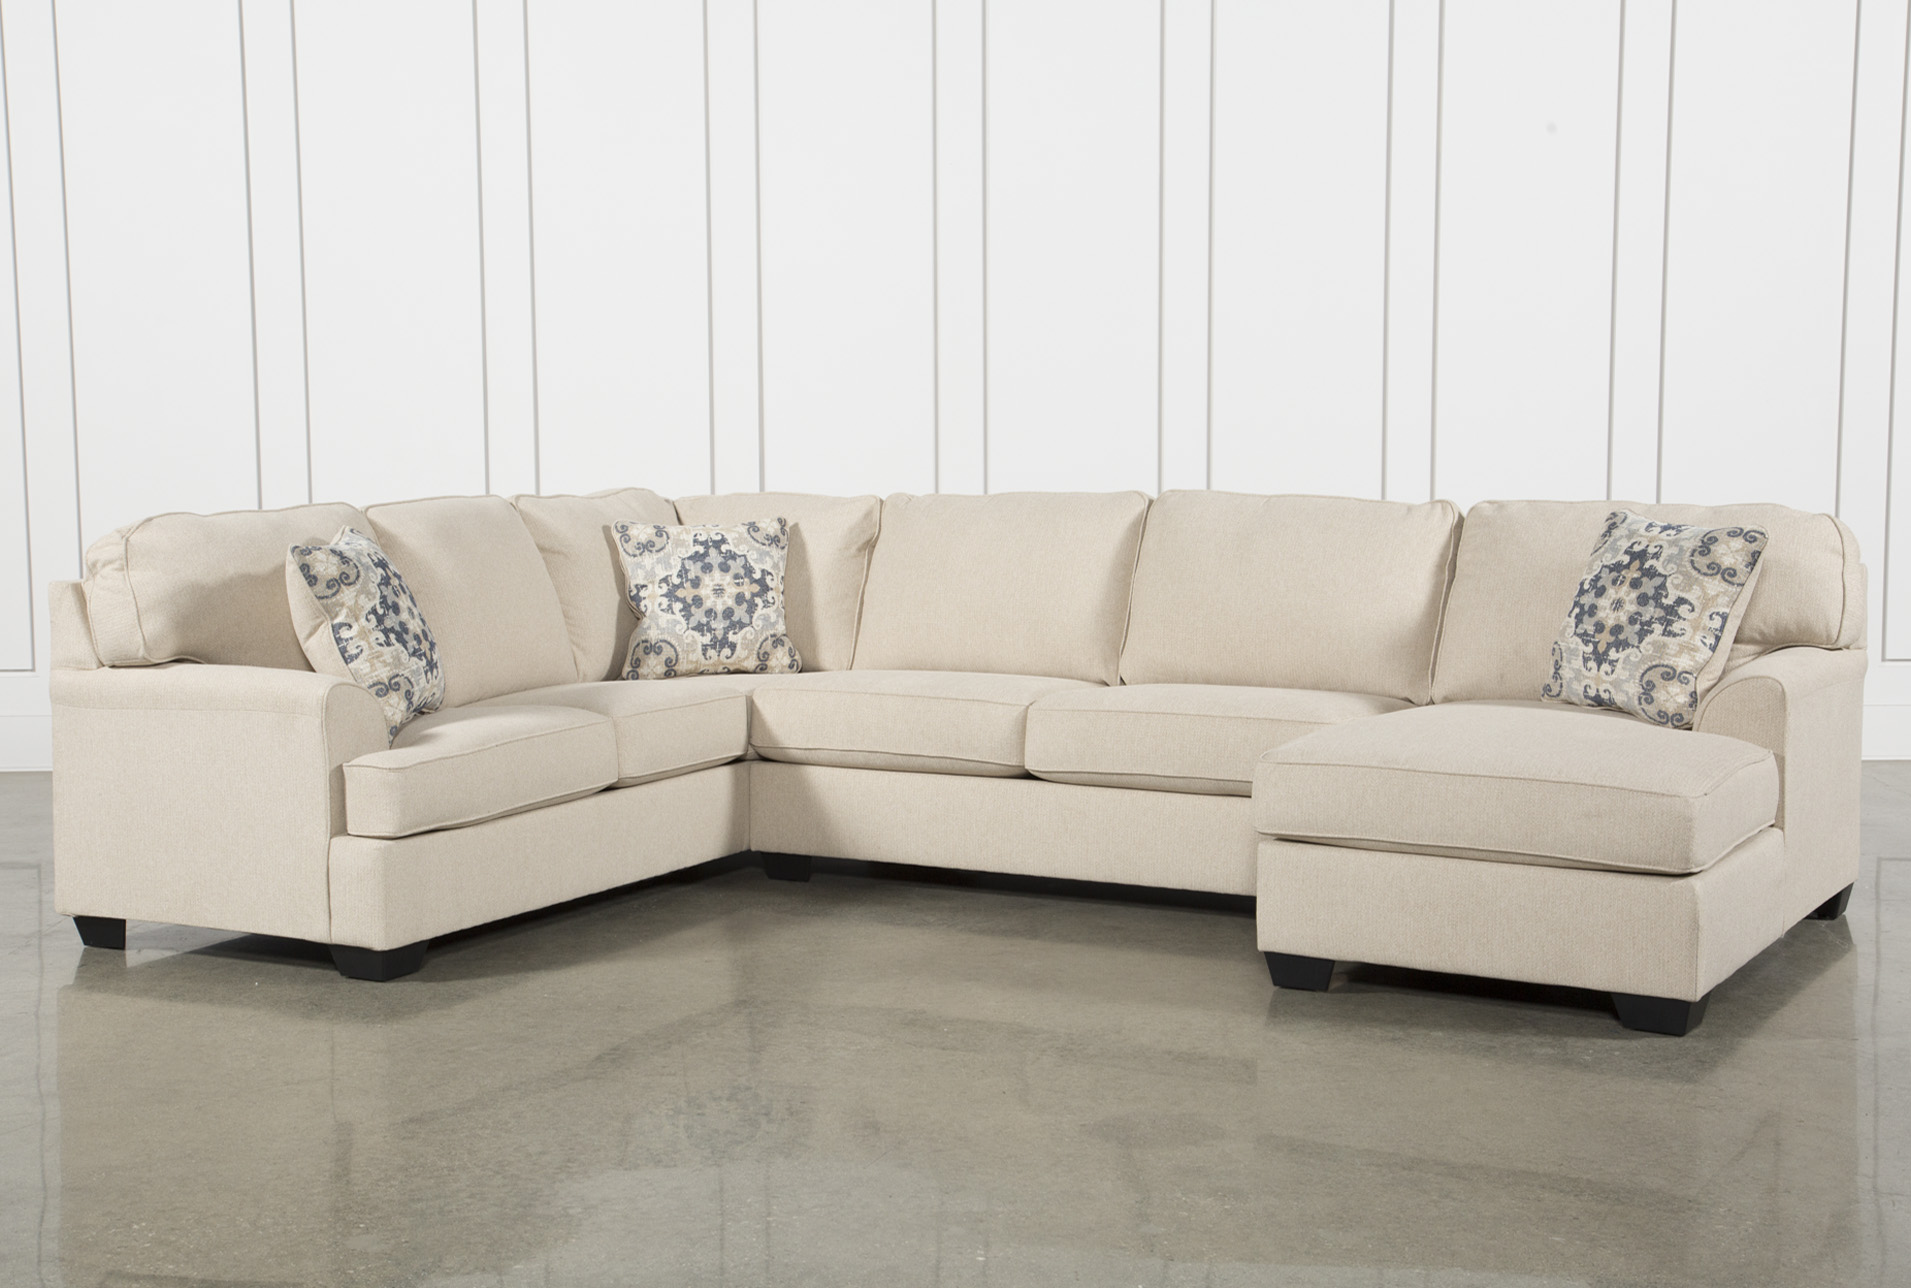 Superbe Malbry Point 3 Piece Sectional W/Raf Chaise   360